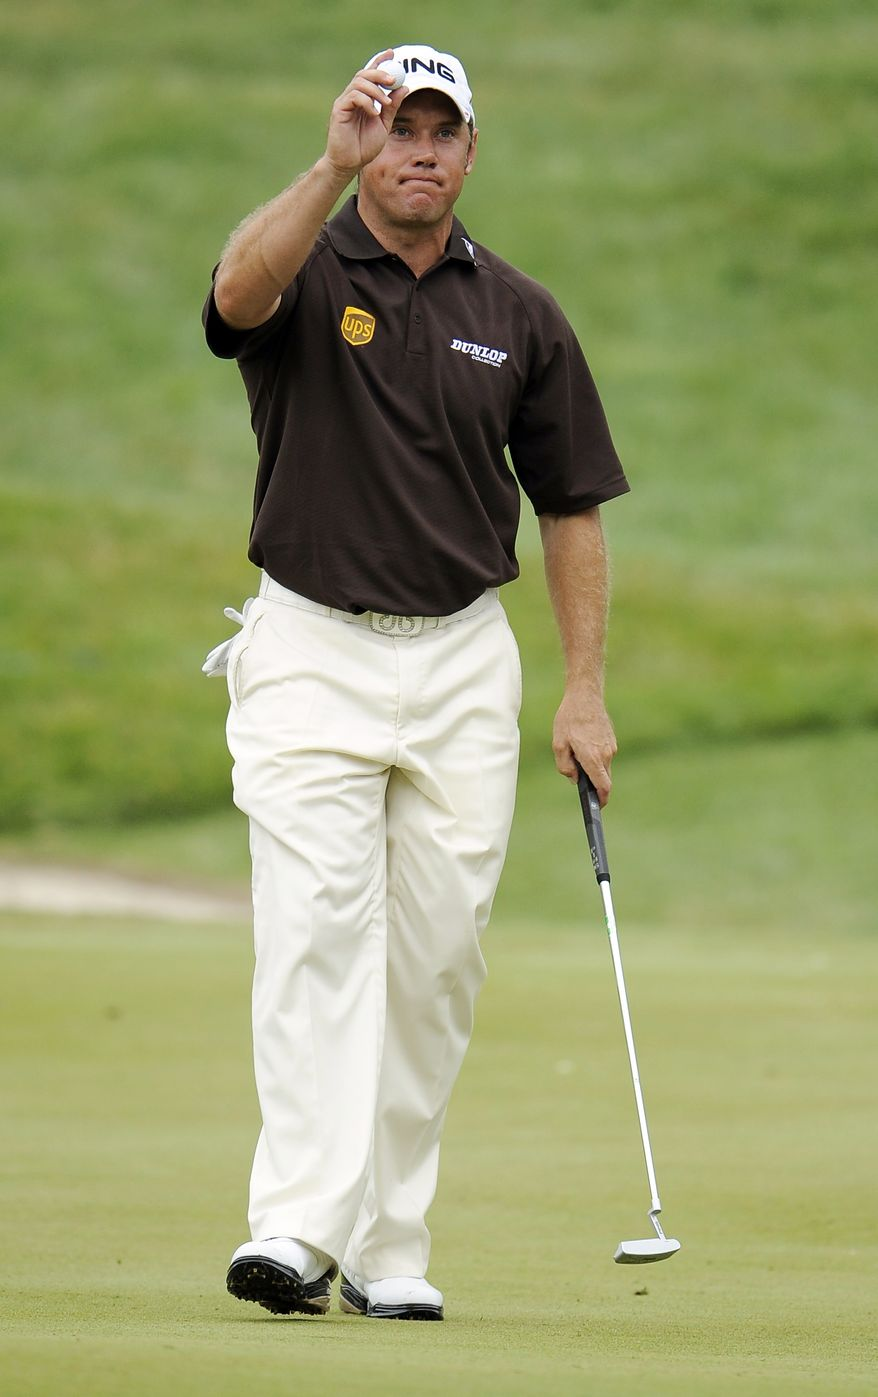 Lee Westwood, of England, acknowledges the gallery as he walks off of the 18th green during the third round of the U.S. Open Championship golf tournament in Bethesda, Md., Saturday, June 18, 2011. (AP Photo/Nick Wass)